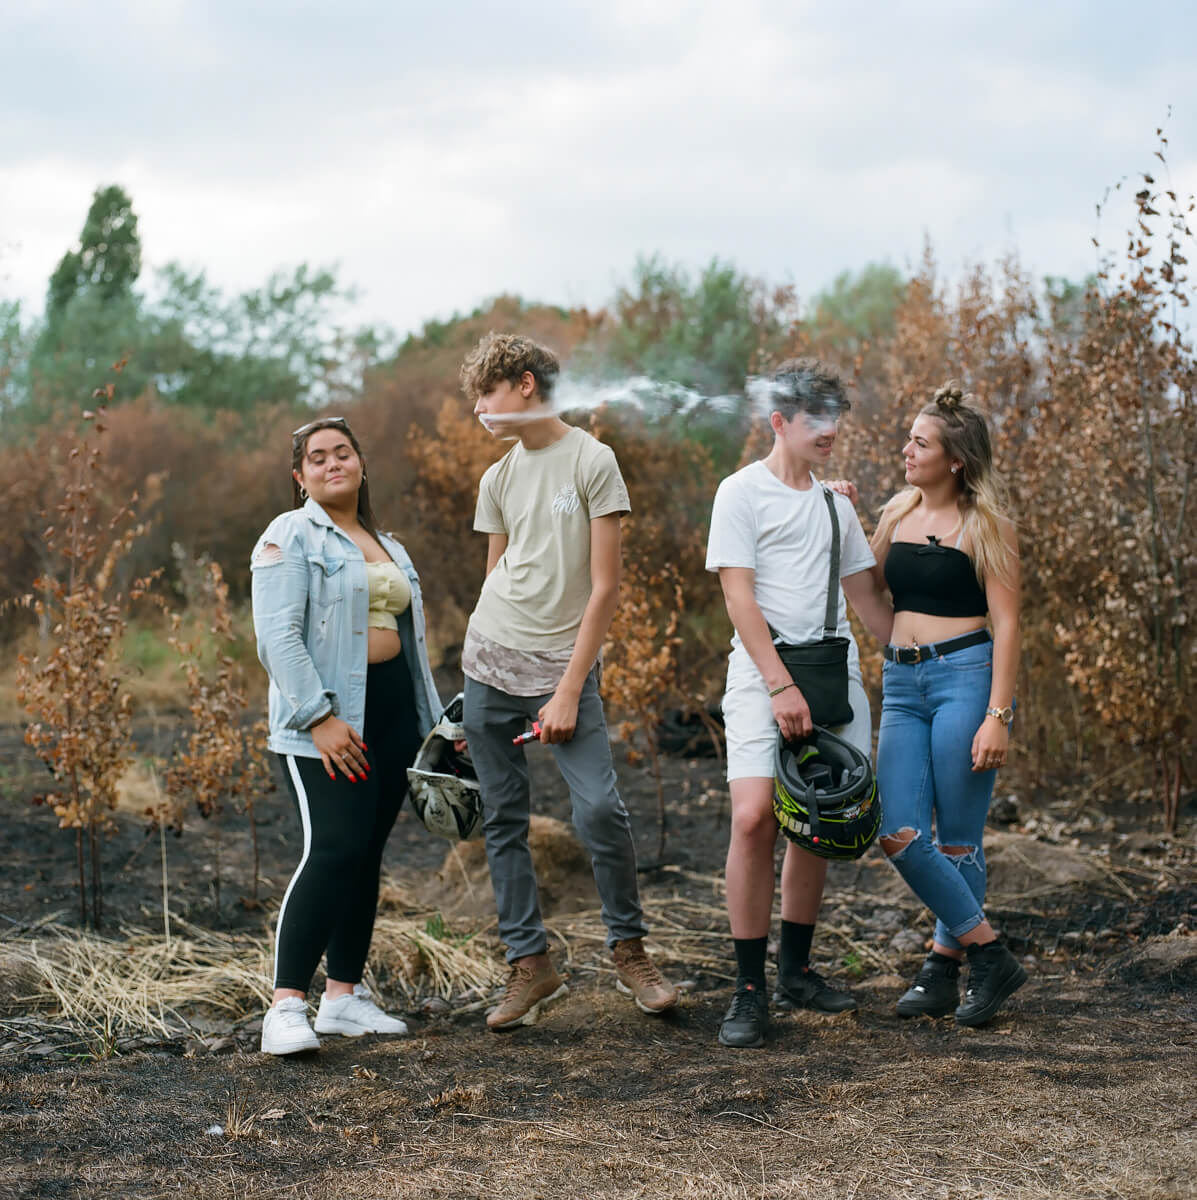 Fern , Callum,Ash and Sophie - The Cracker<p>© Laura Pannack</p>